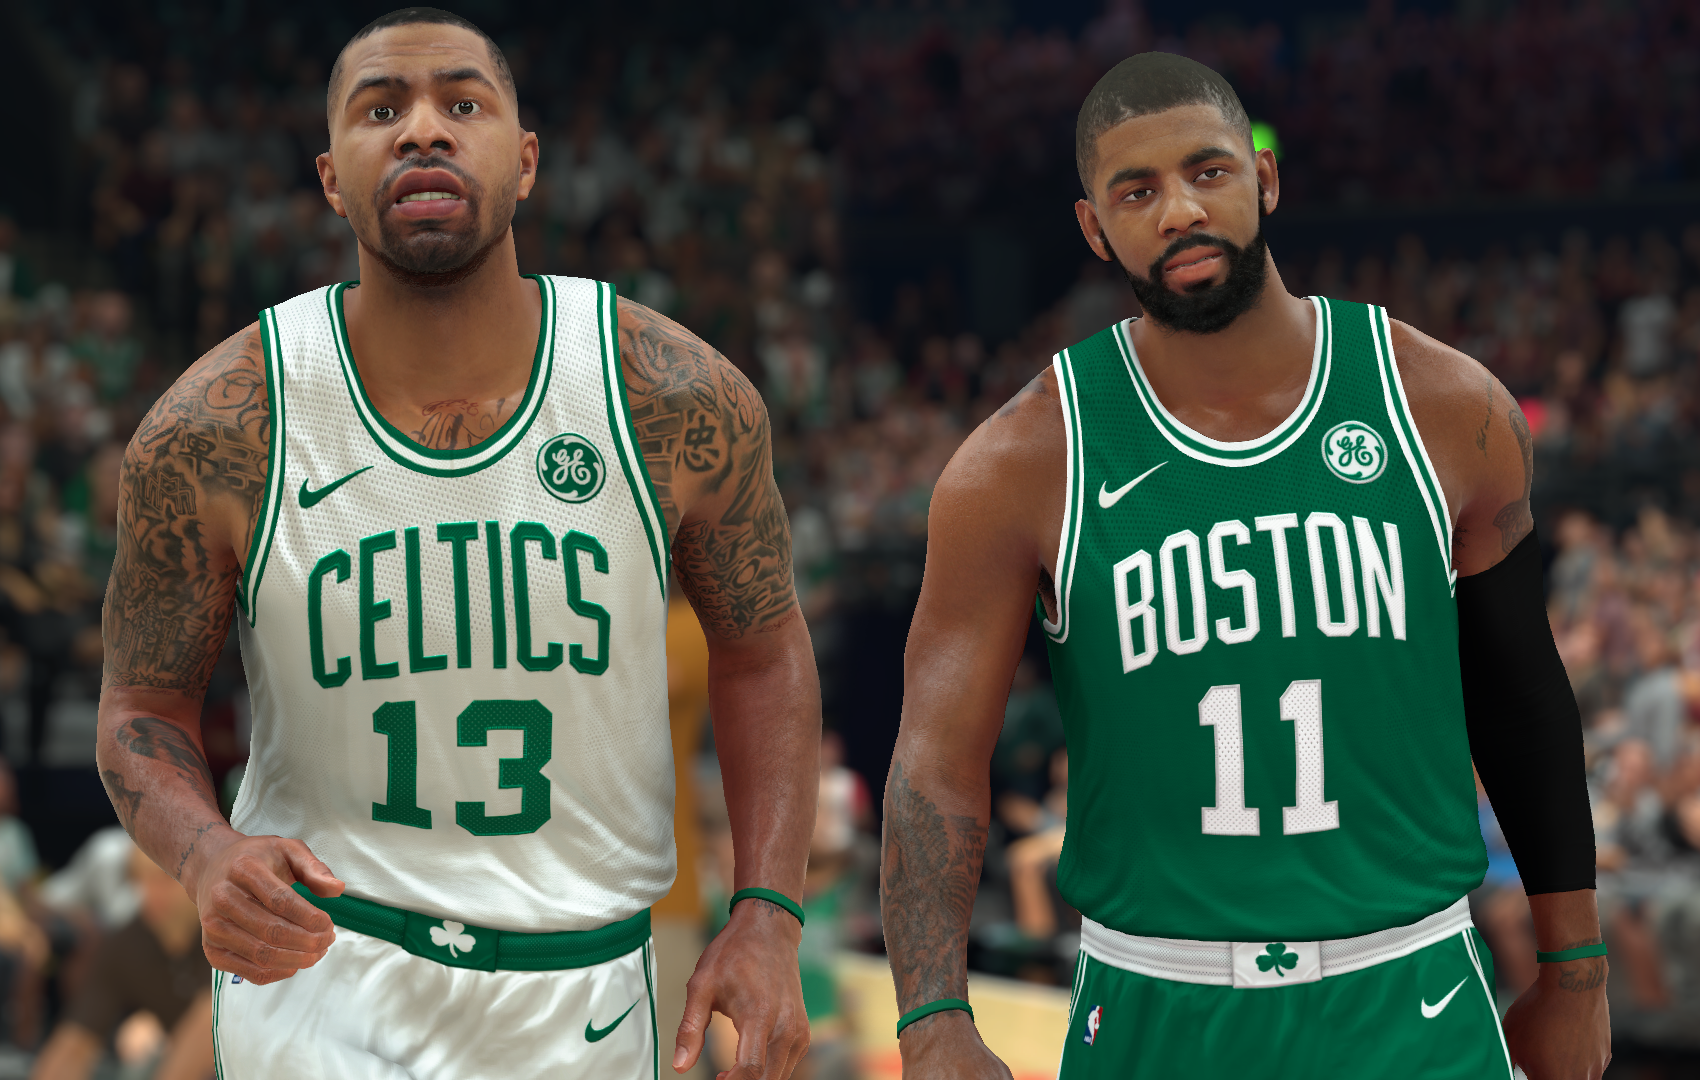 Boston Celtics Jersey 2017-18 (pinoy21)